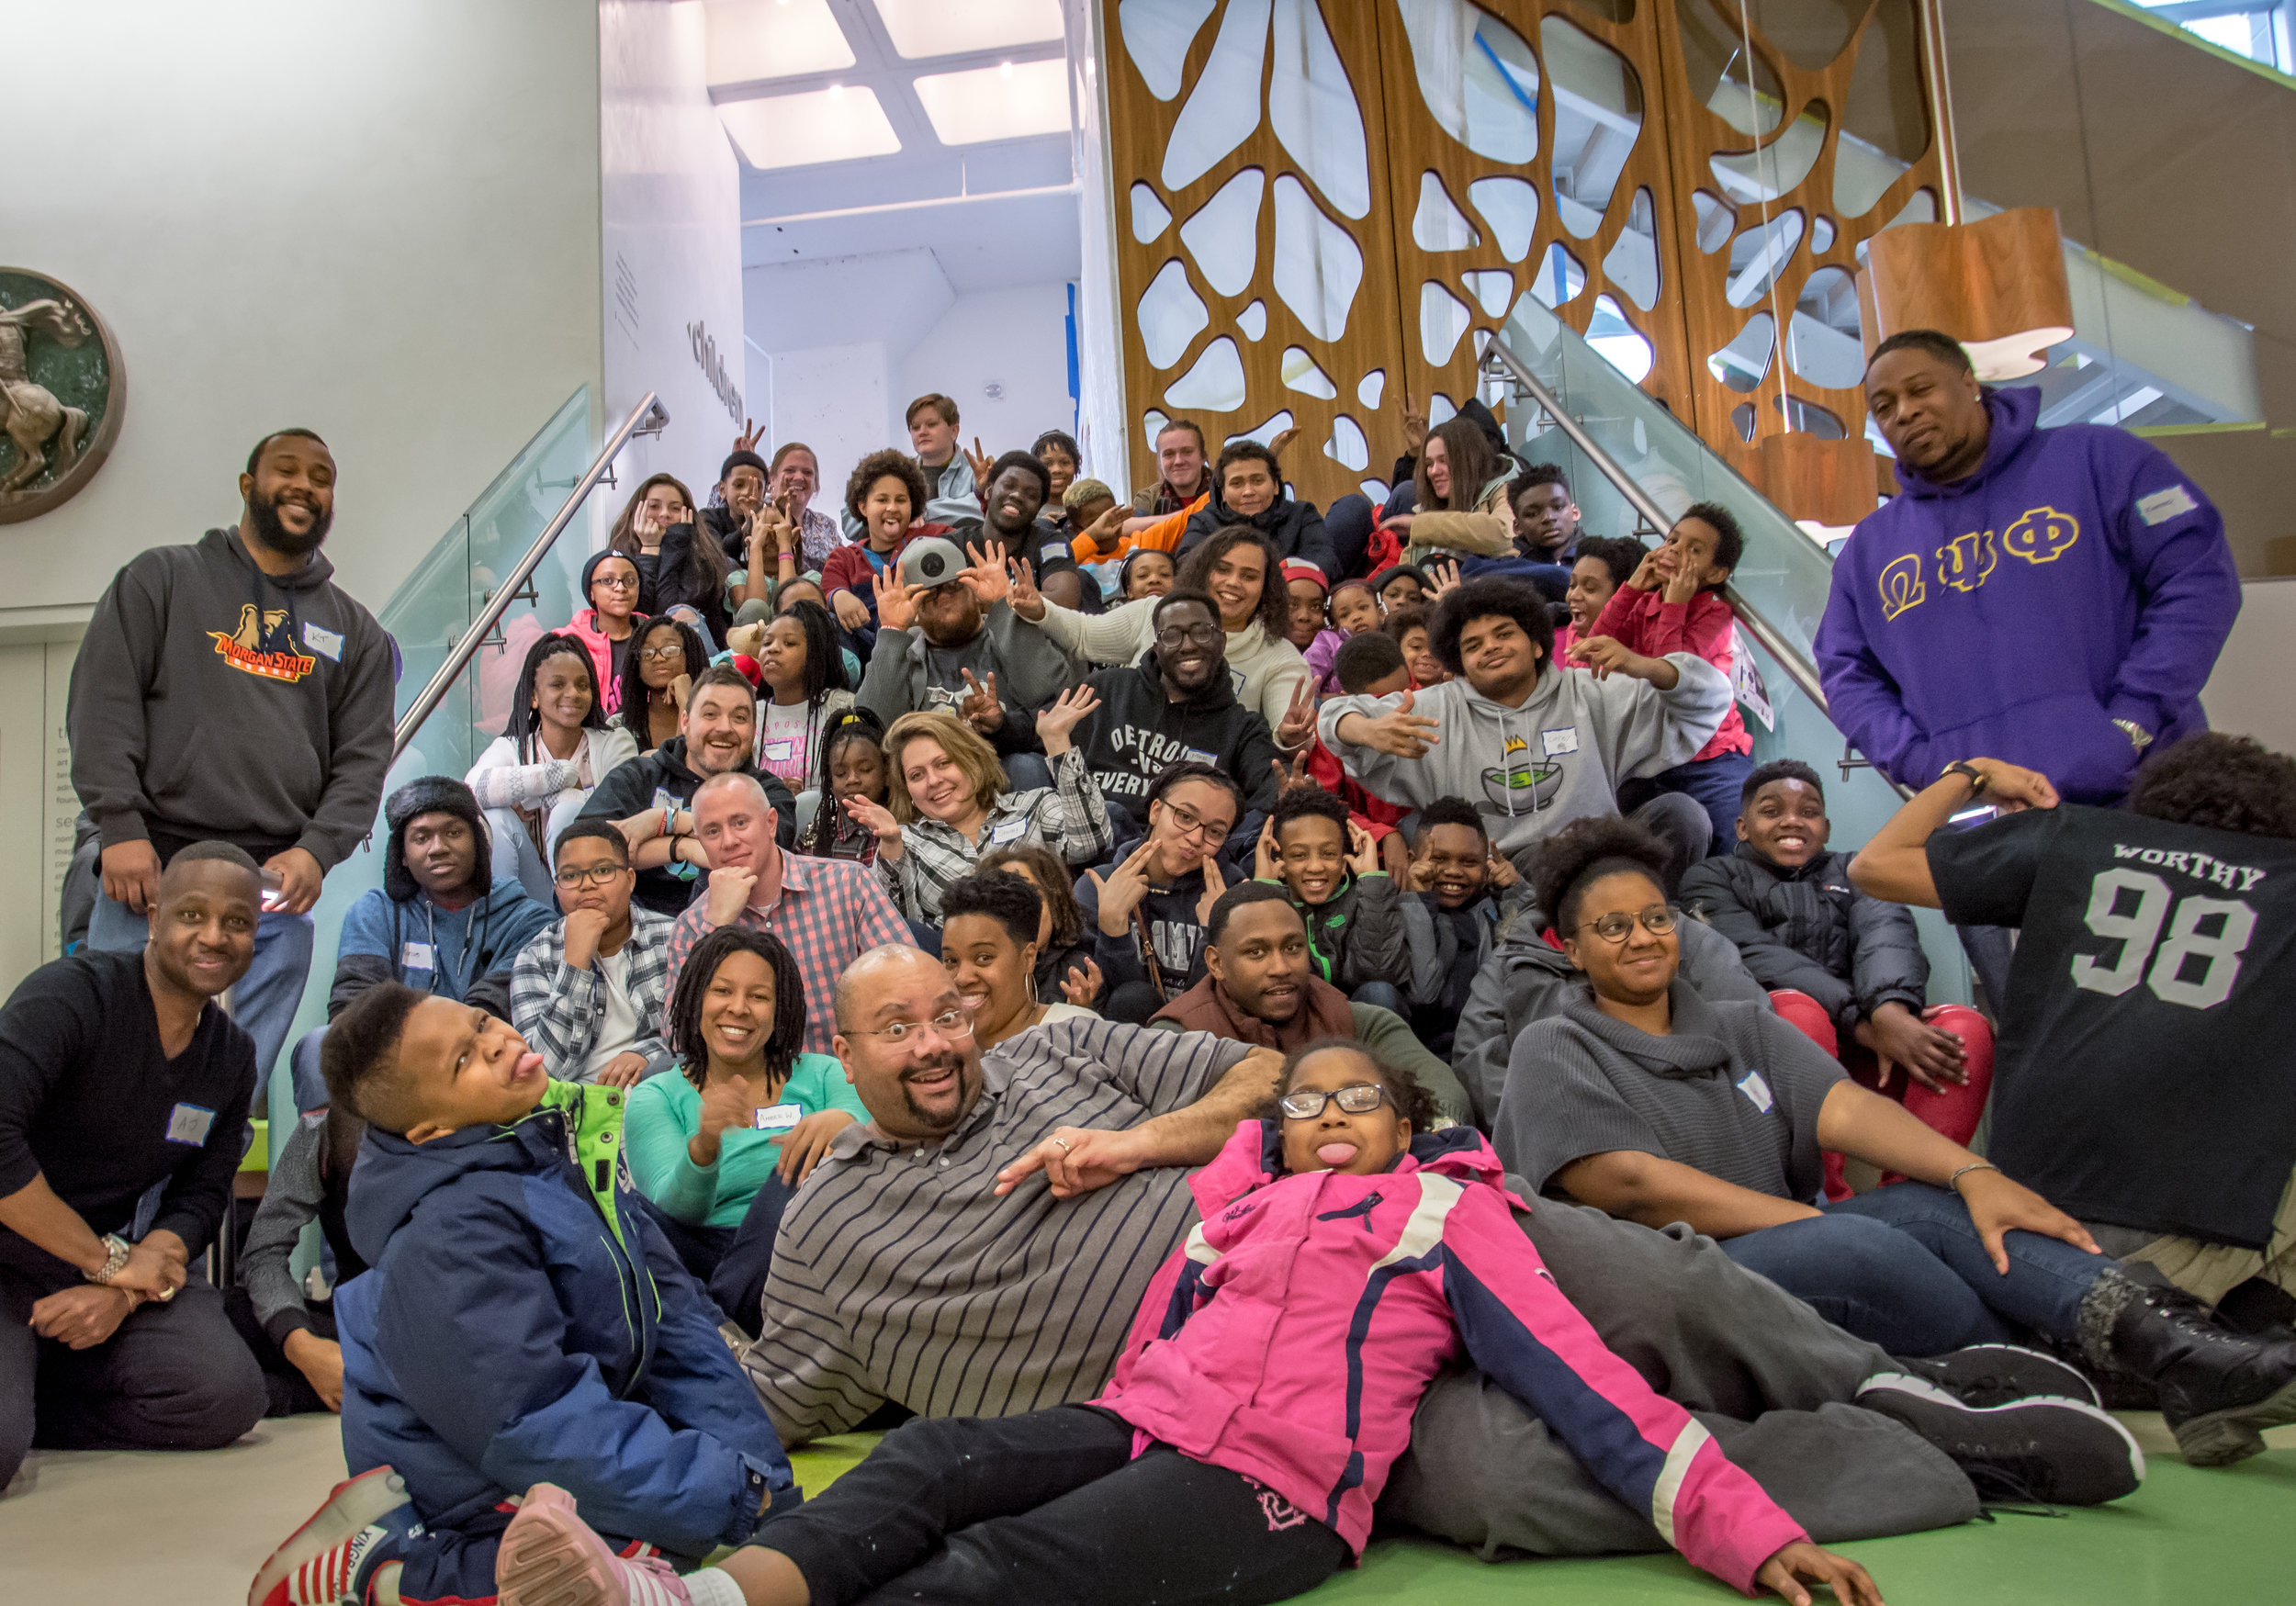 2017 Hip Hop Architecture Camp at Madison Public Library Photo by: MOD Media